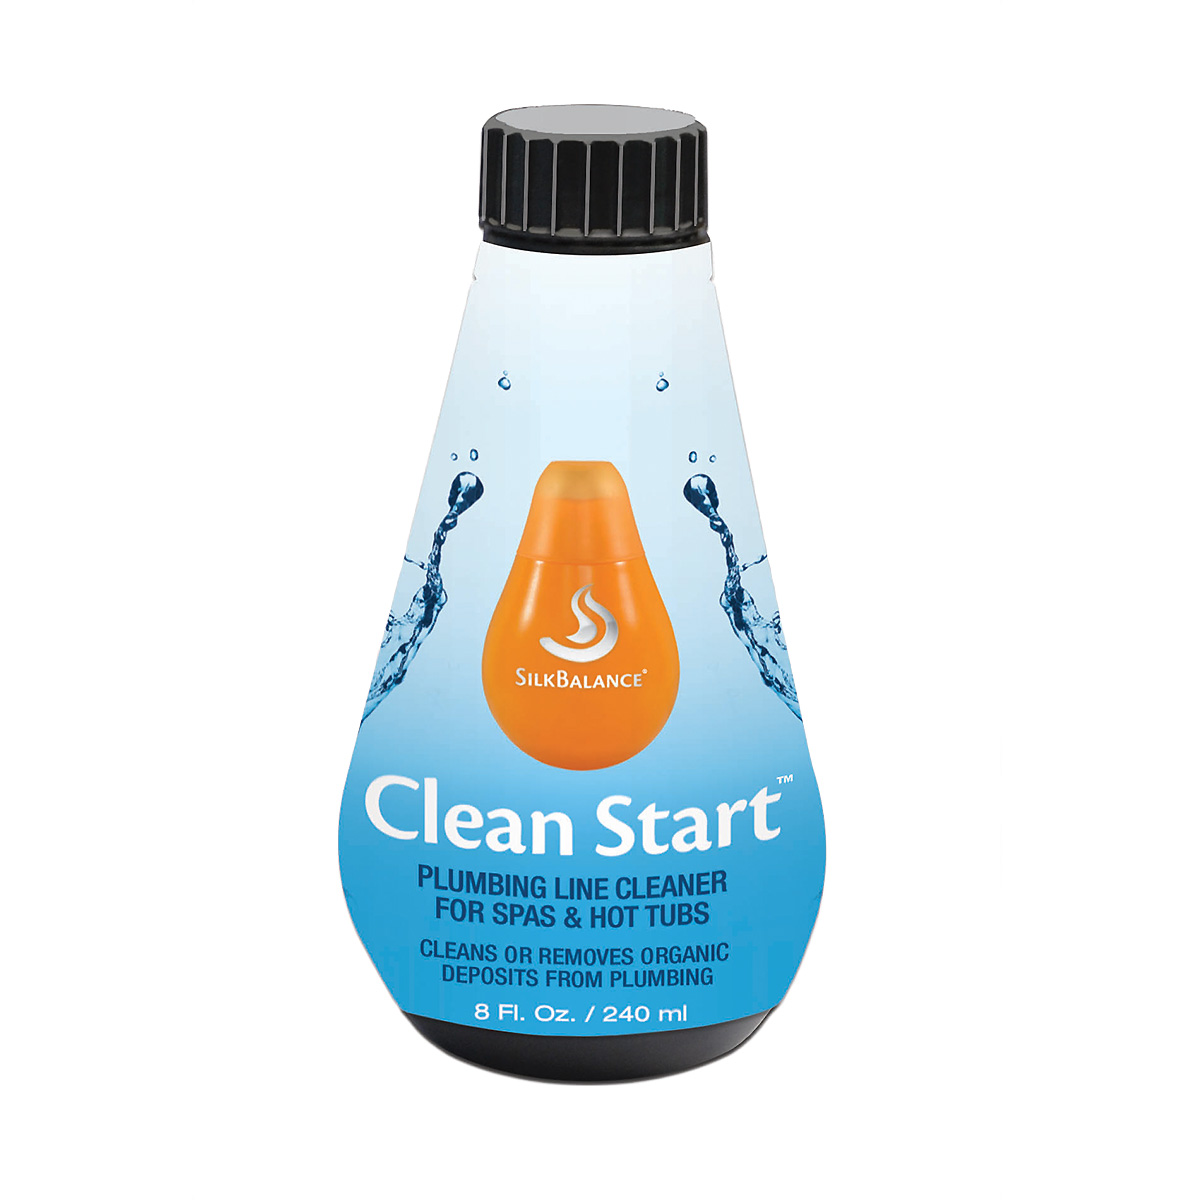 Clean Start by SilkBalance – SilkBalance